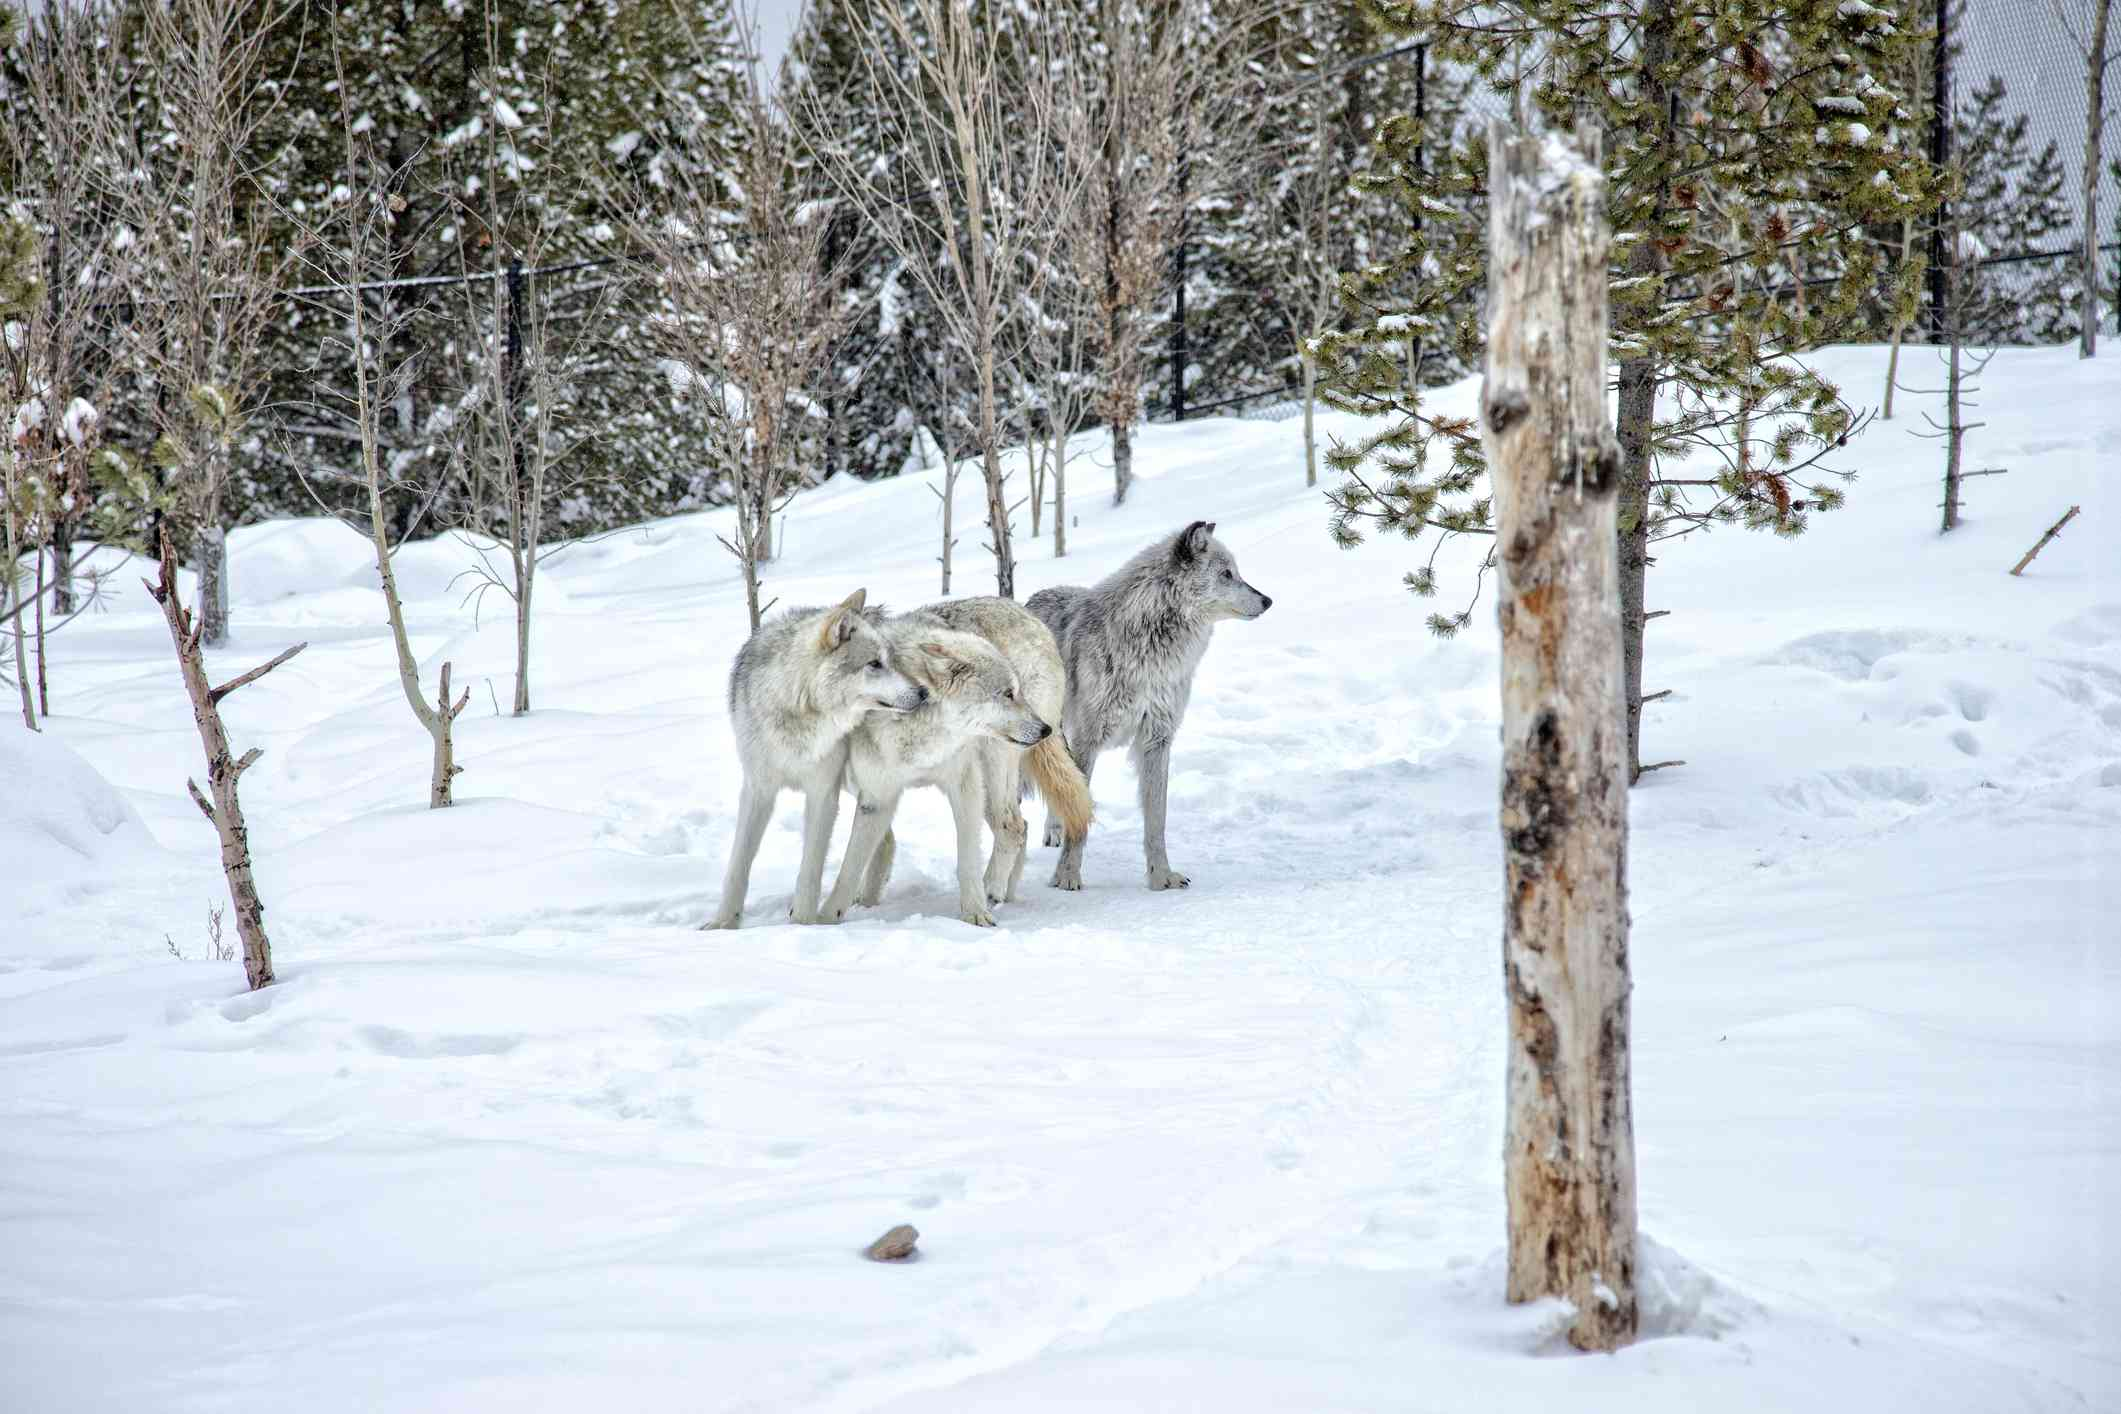 A group of gray wolves in Yellowstone National Park, Montana.